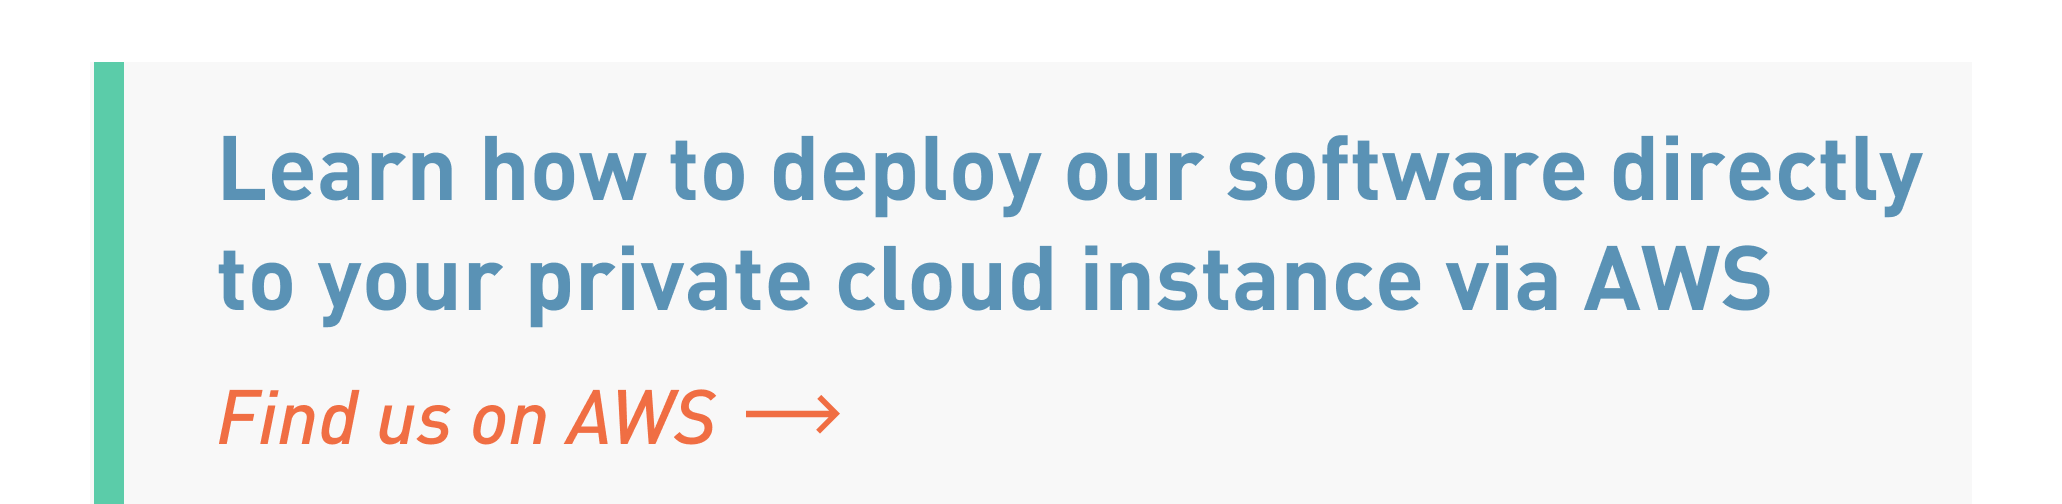 Learn how to deploy our software directly to your private cloud instance via AWS | Find us on AWS